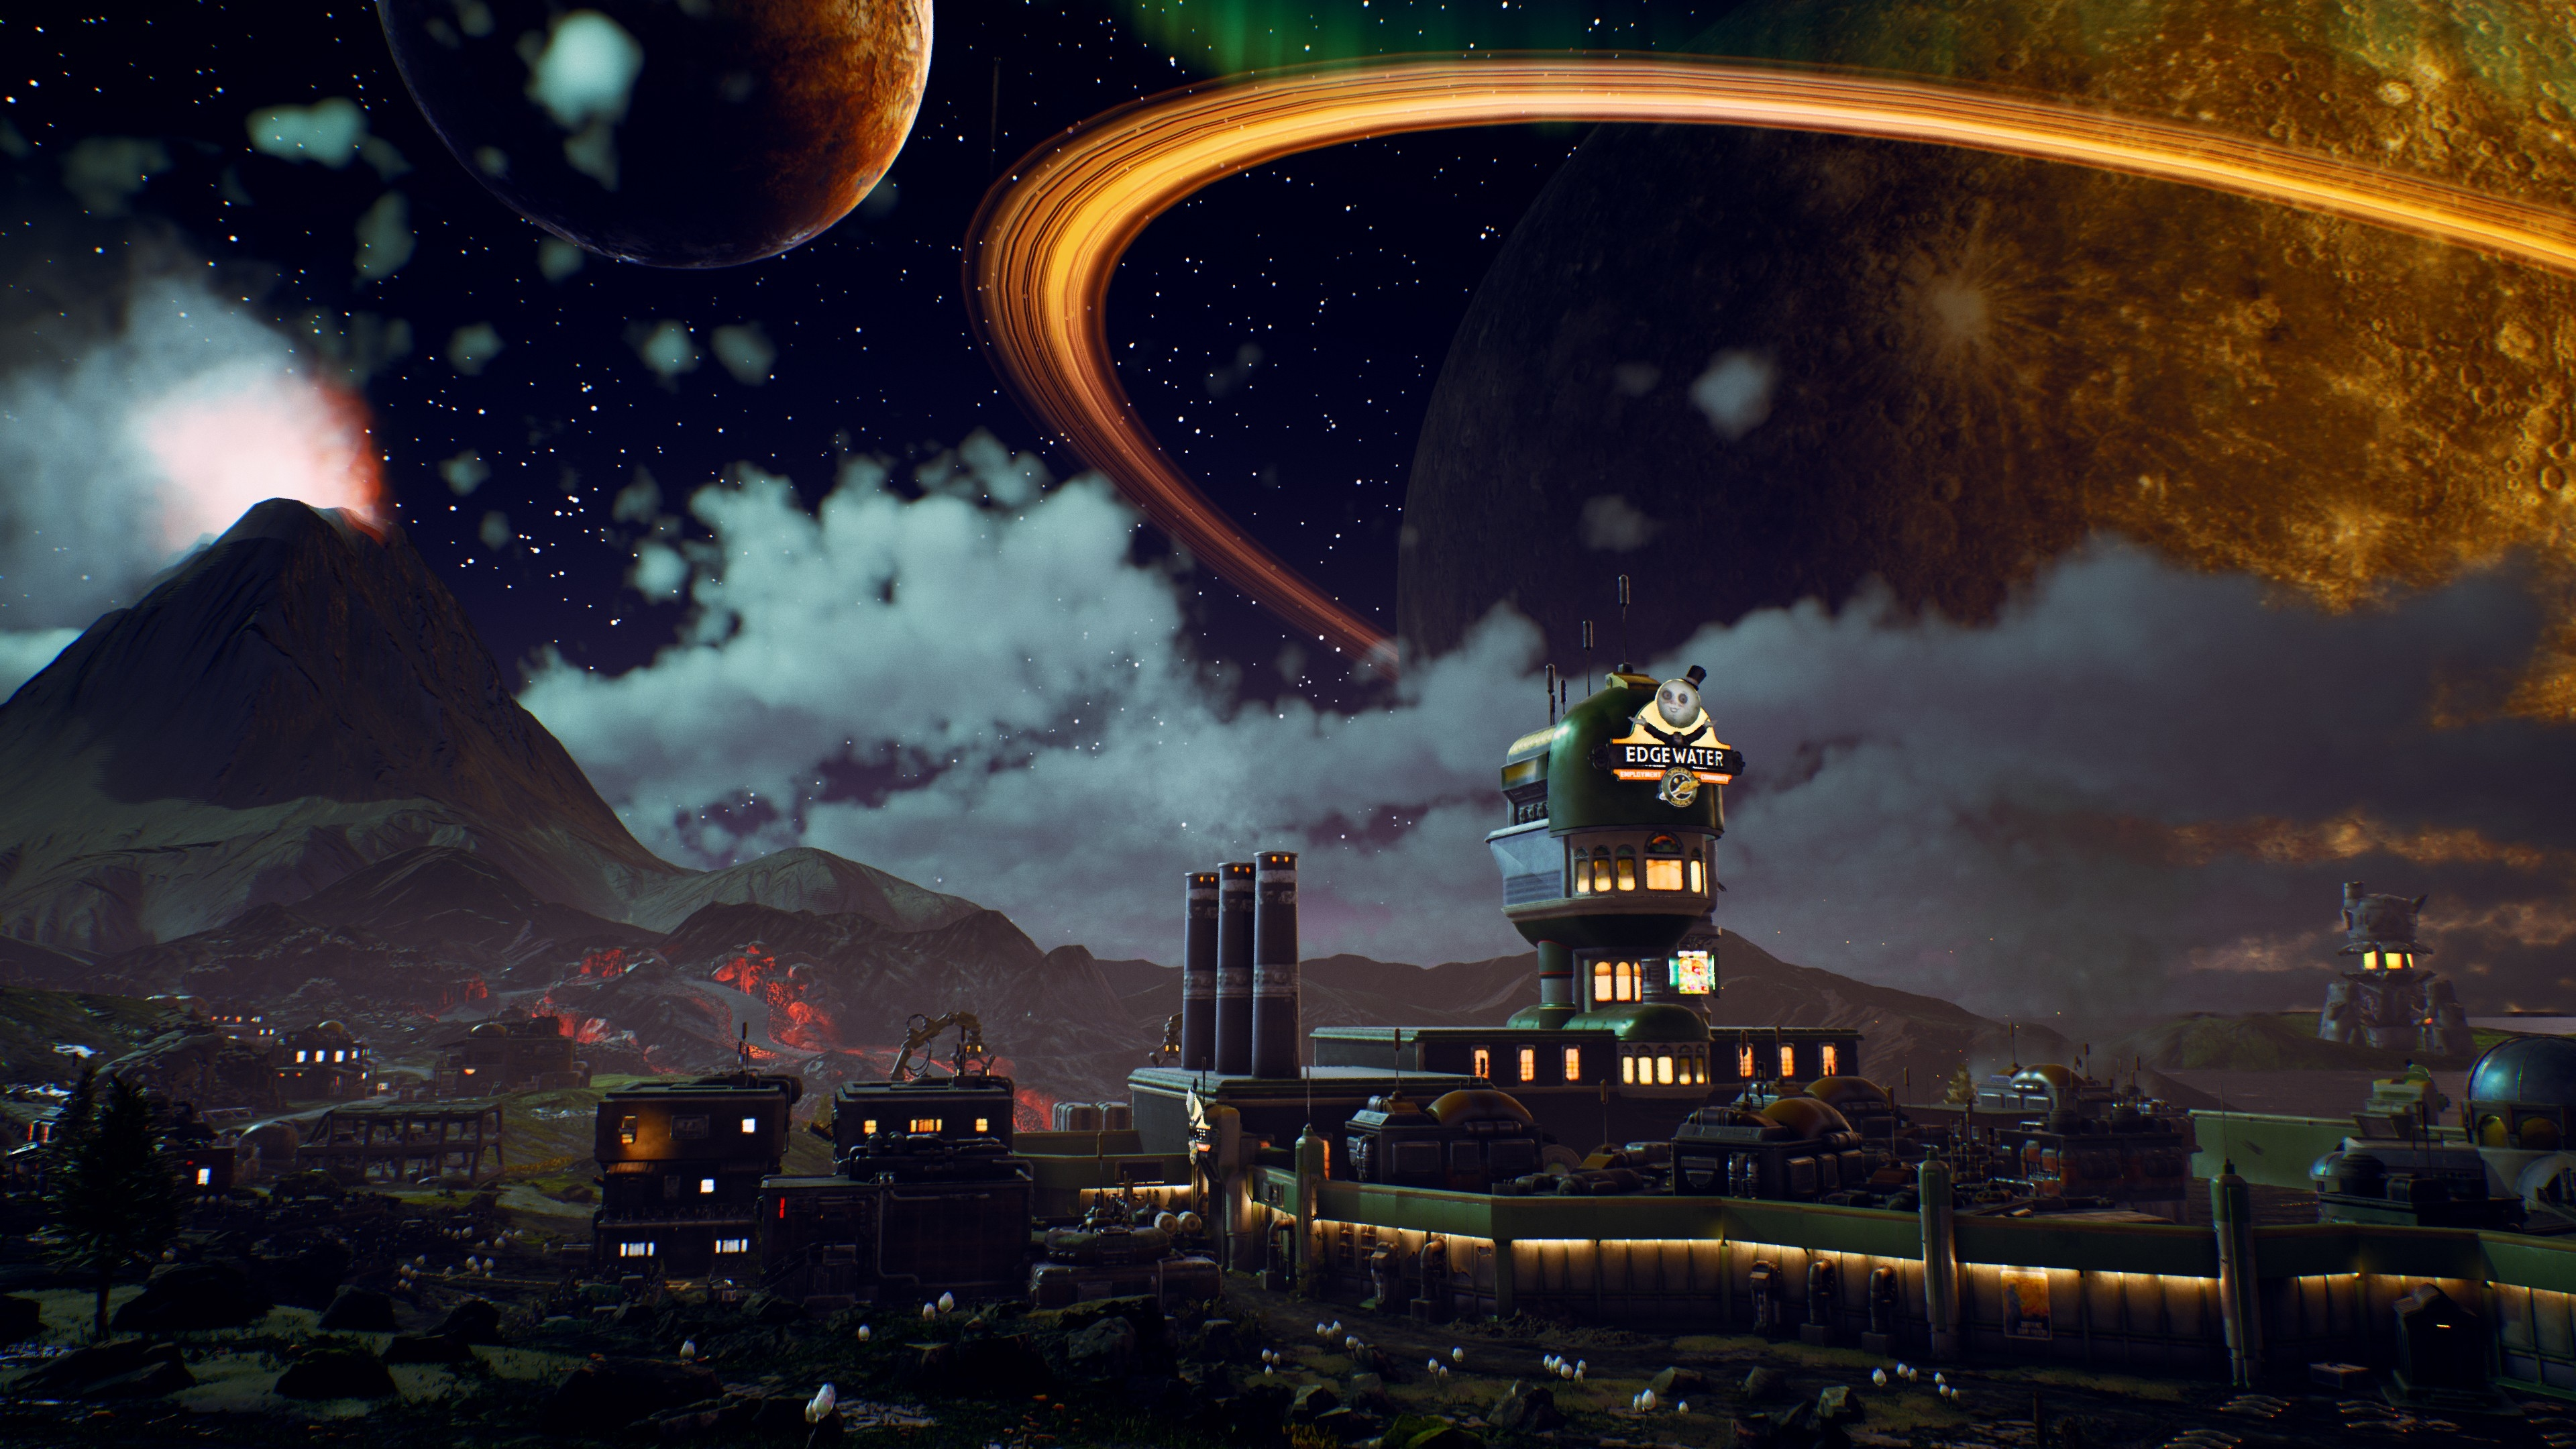 2560x1440 The Outer Worlds 4k 1440P Resolution Wallpaper ...